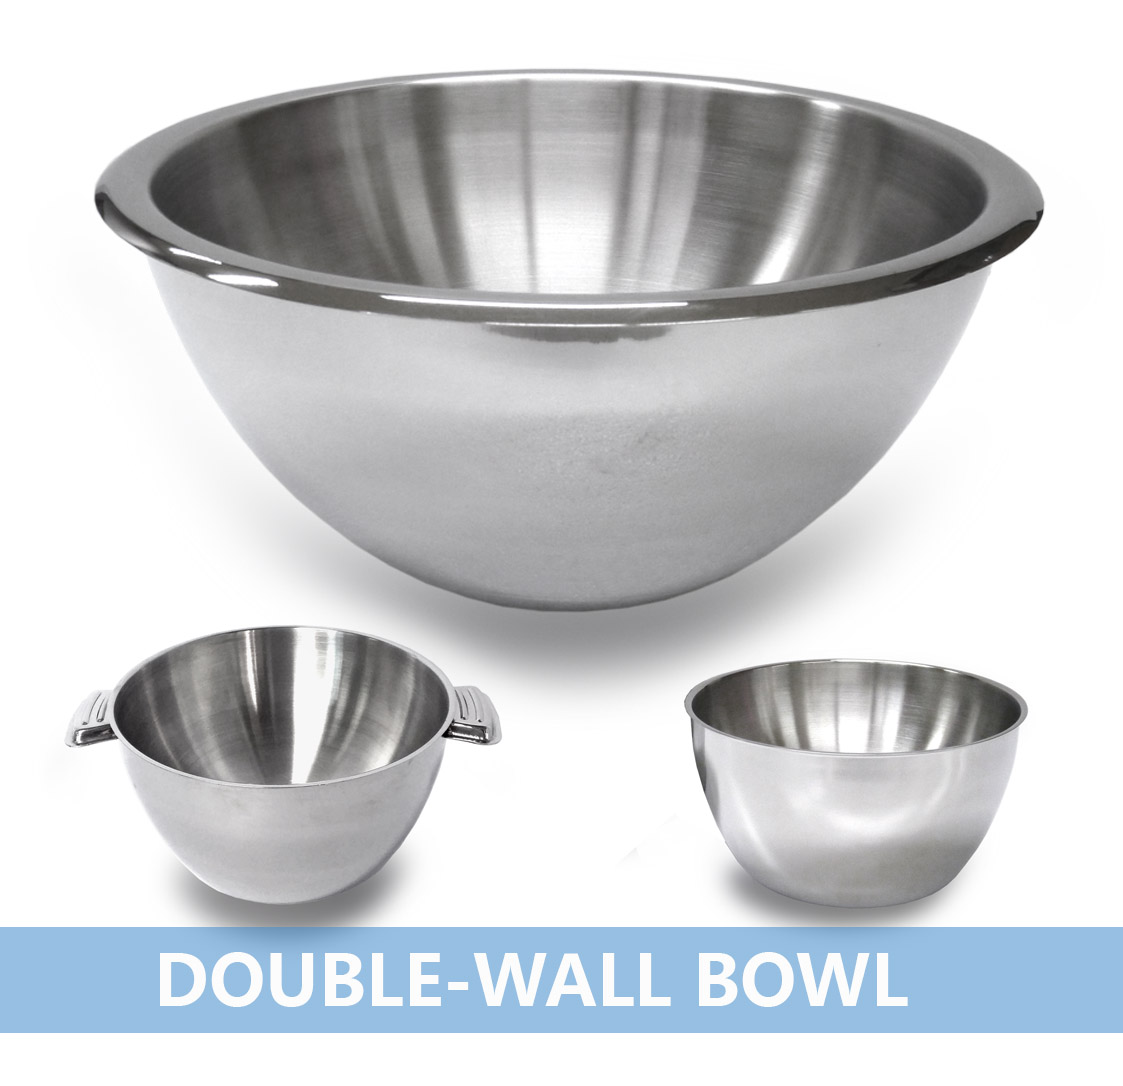 双层煲 Double-Wall Bowl